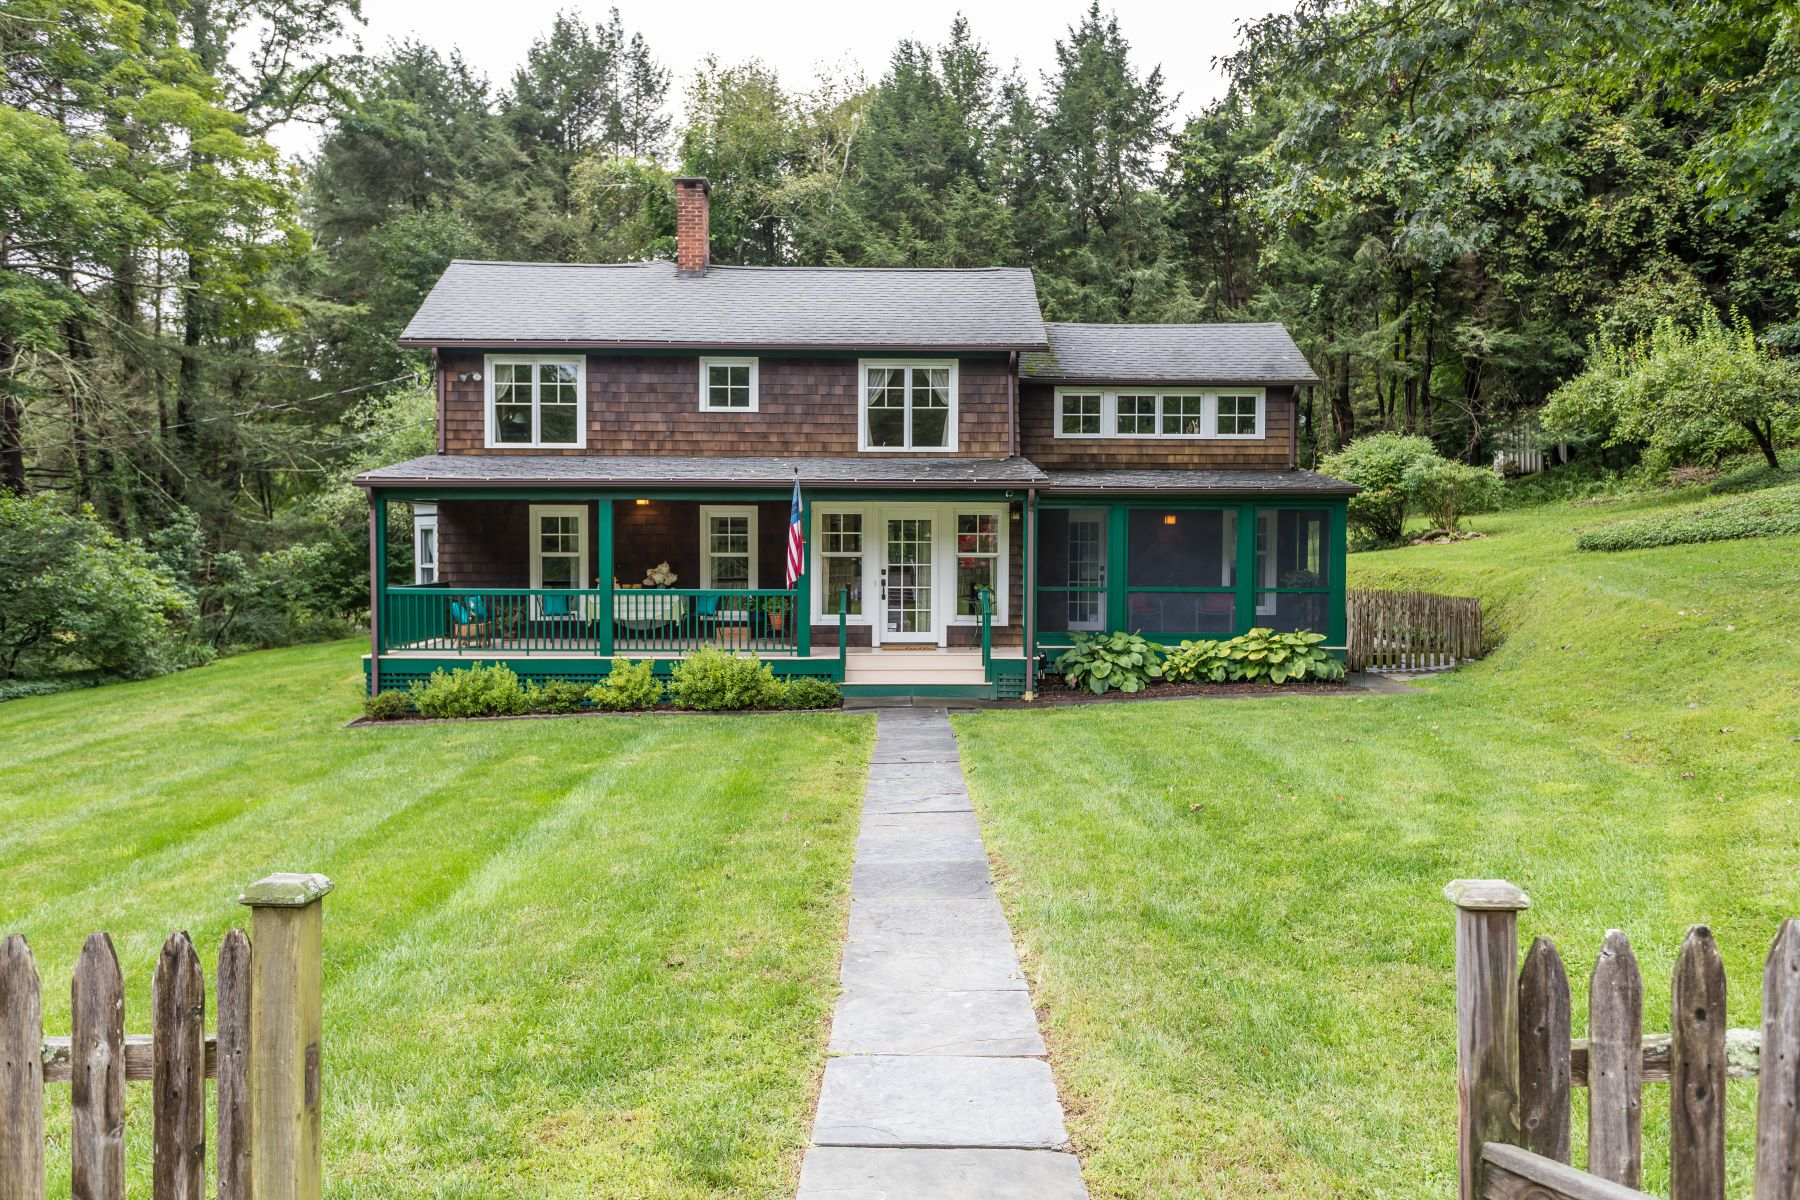 Casa Unifamiliar por un Venta en Beautifully-Renovated Antique Home 44 Evans Hill Road Sherman, Connecticut 06784 Estados Unidos